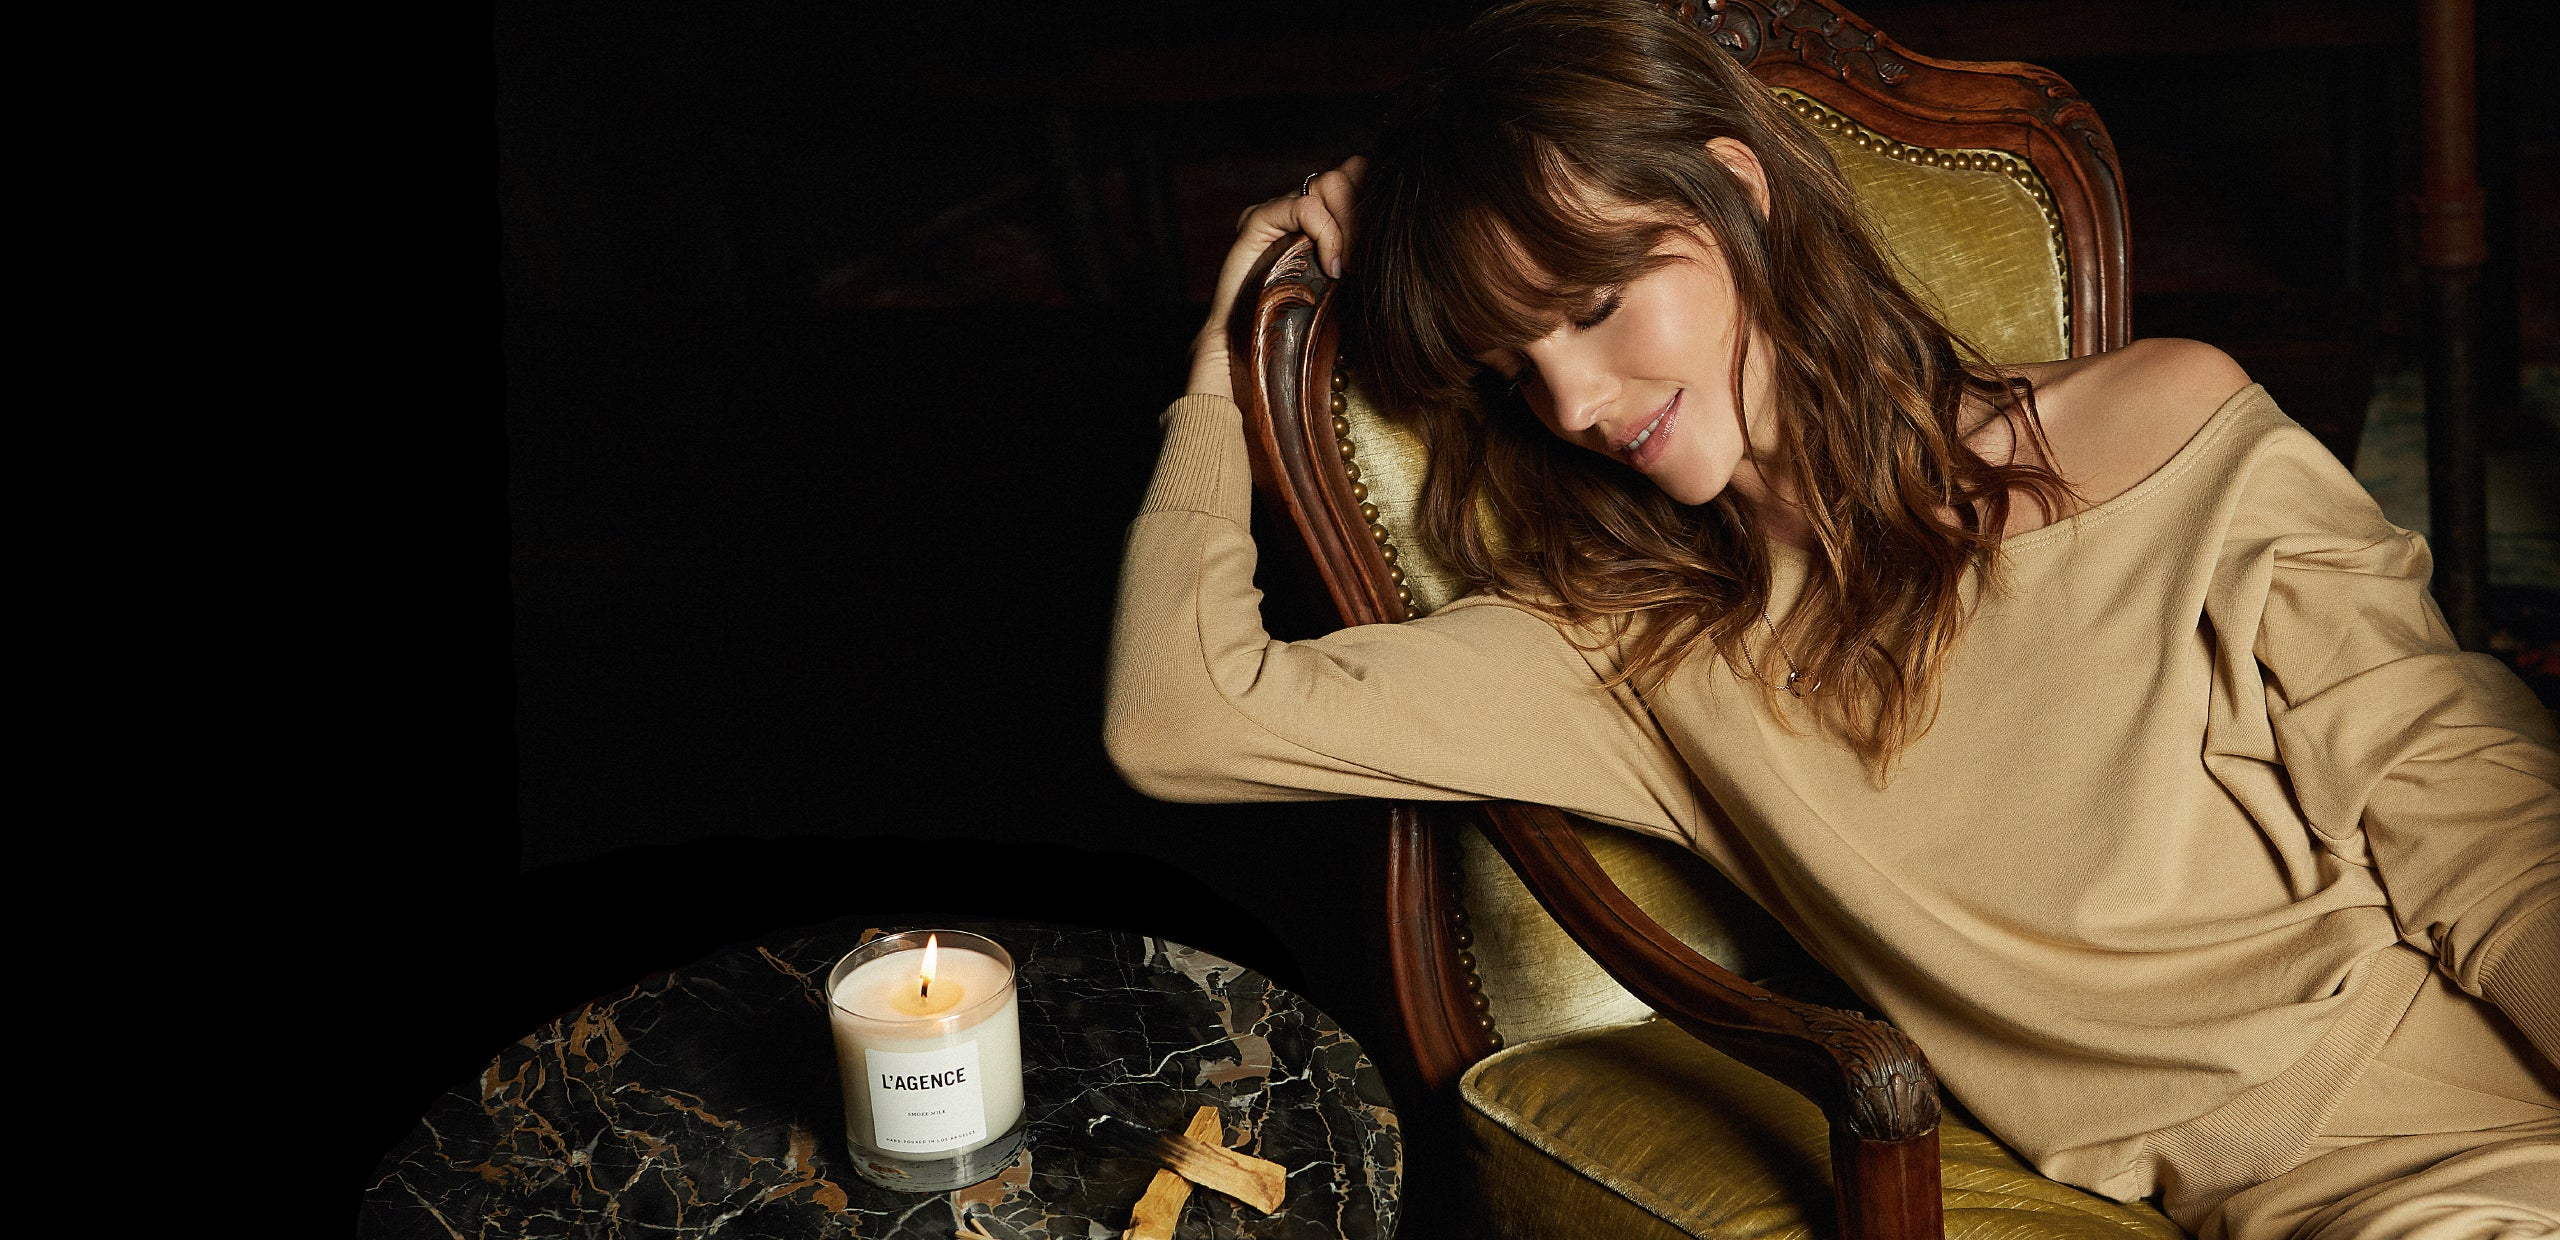 Hero Image - Luxe Loungewear by L'AGENCE